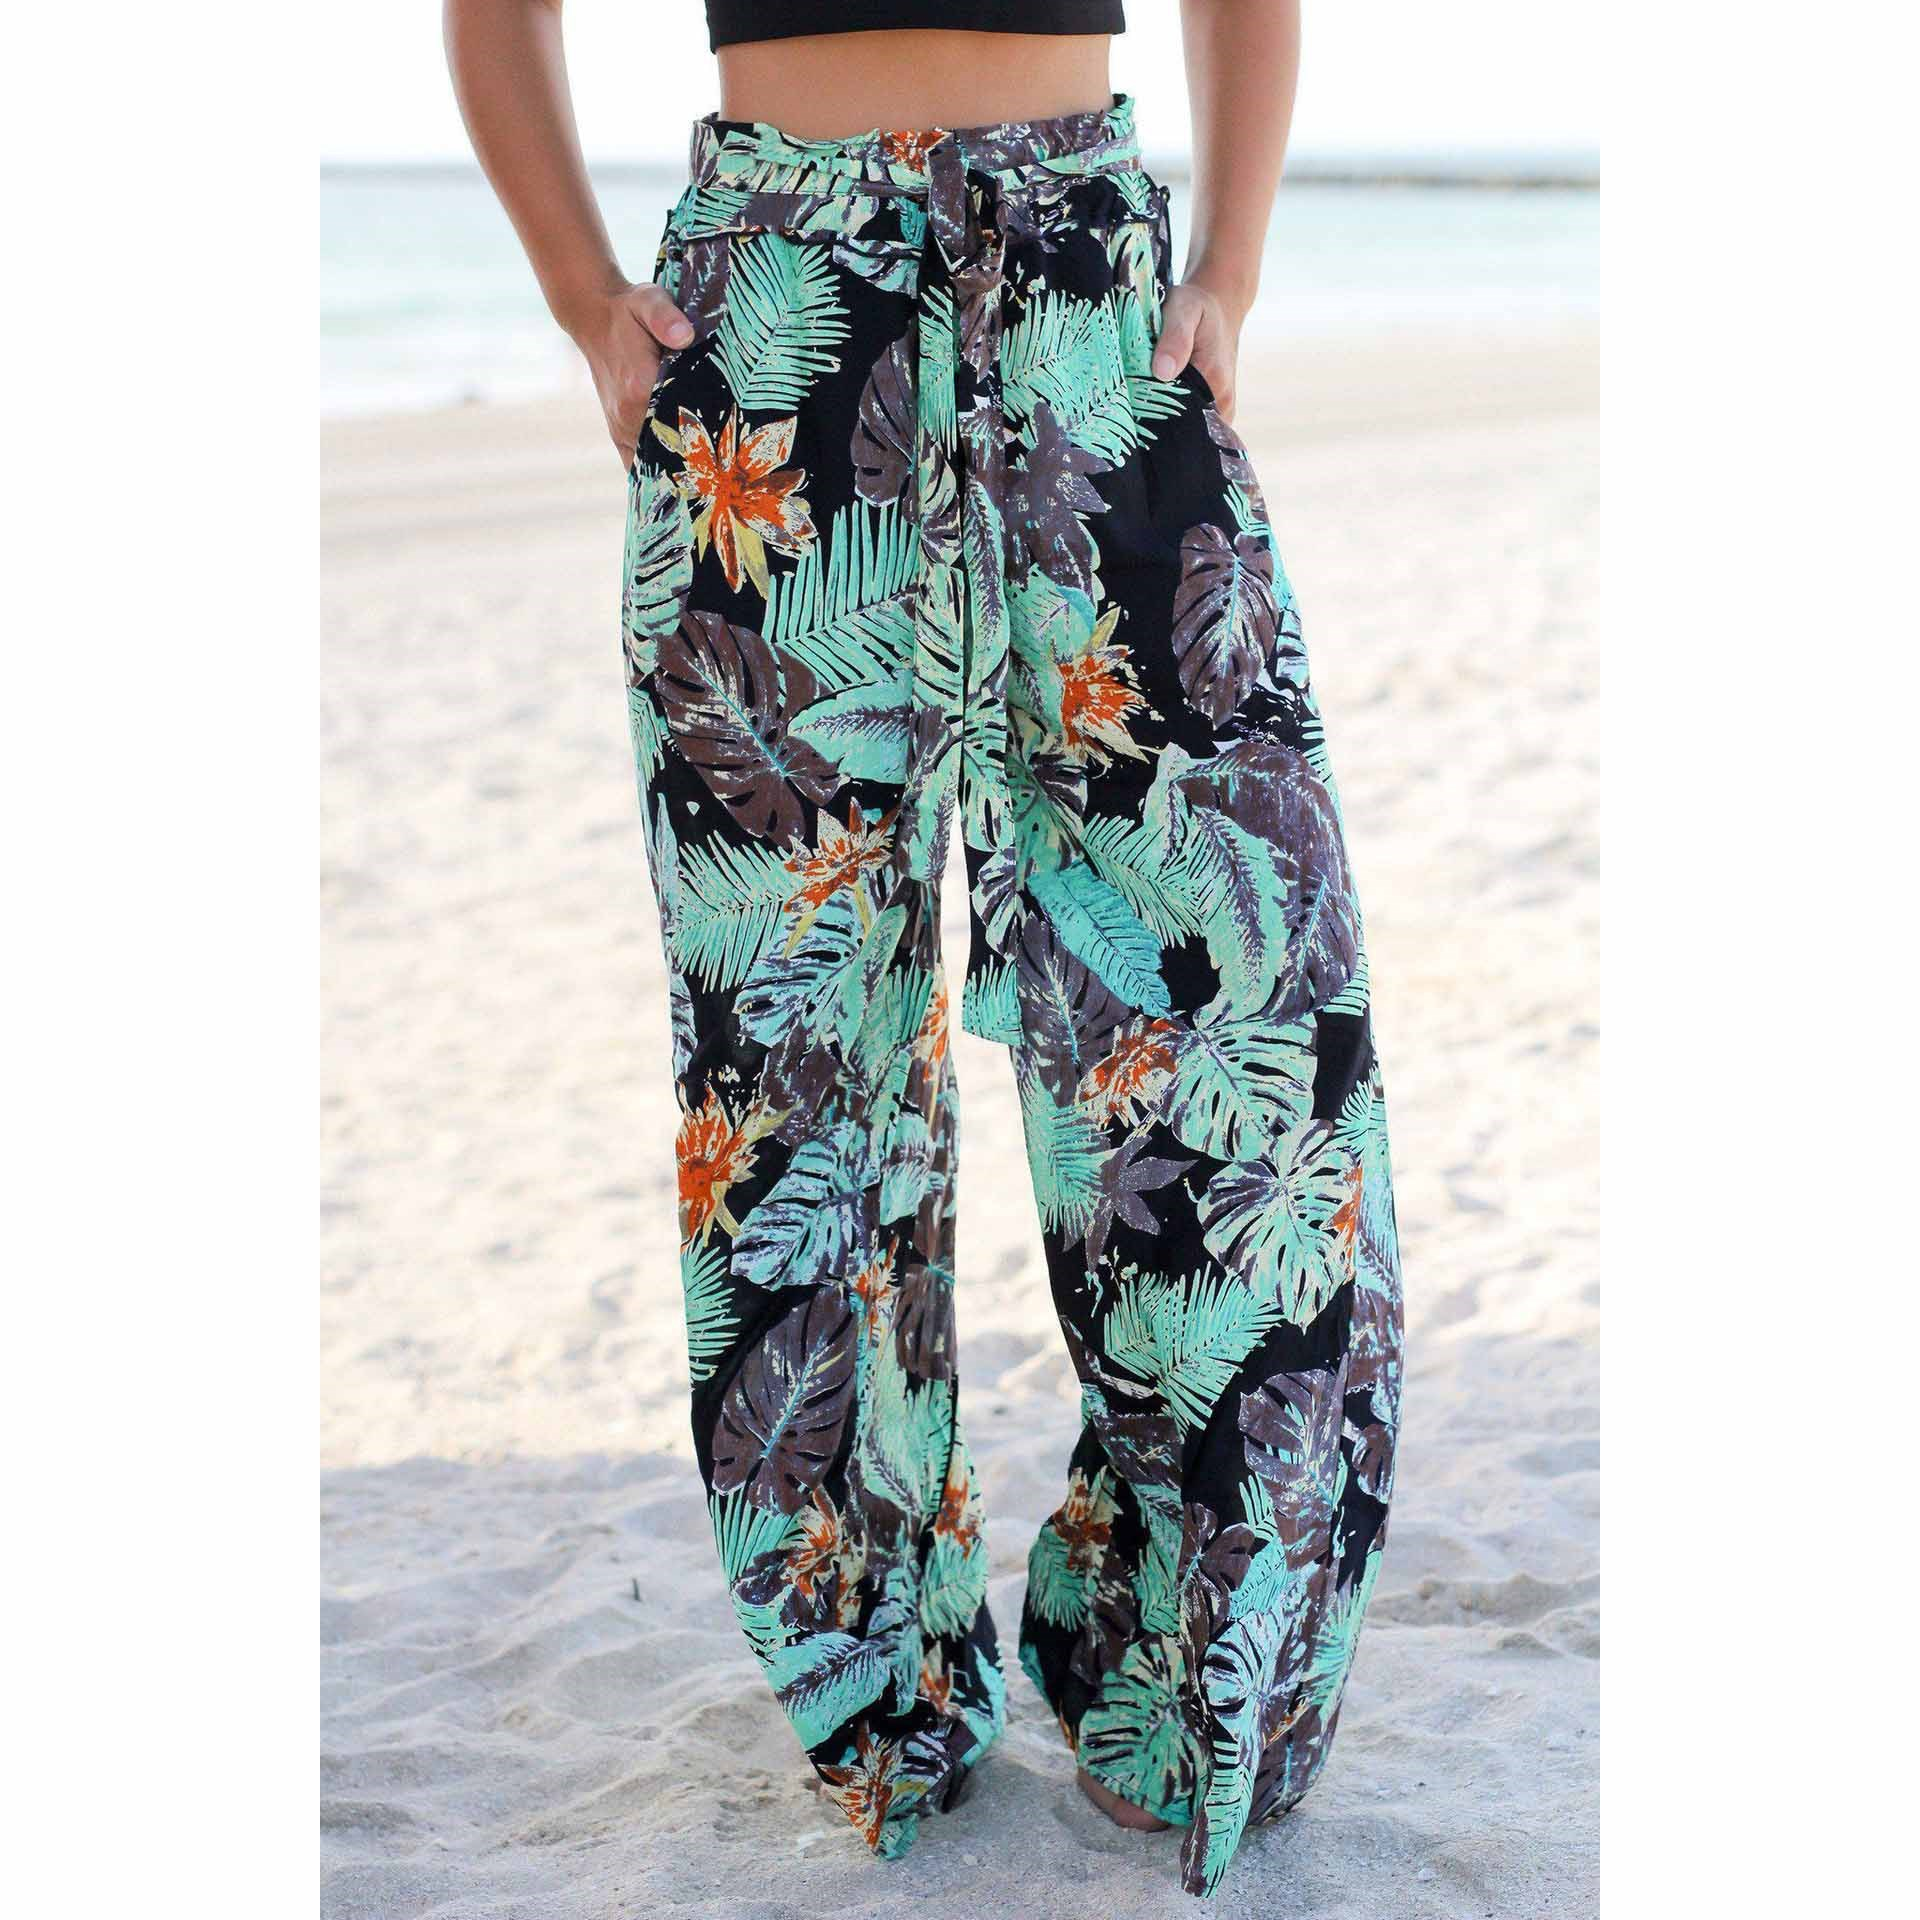 2019 Loose Women Pocket Boho Trousers Summer Beach Printed   Wide     Leg     Pants   Casual Elastic High Waist Lace Up Trousers